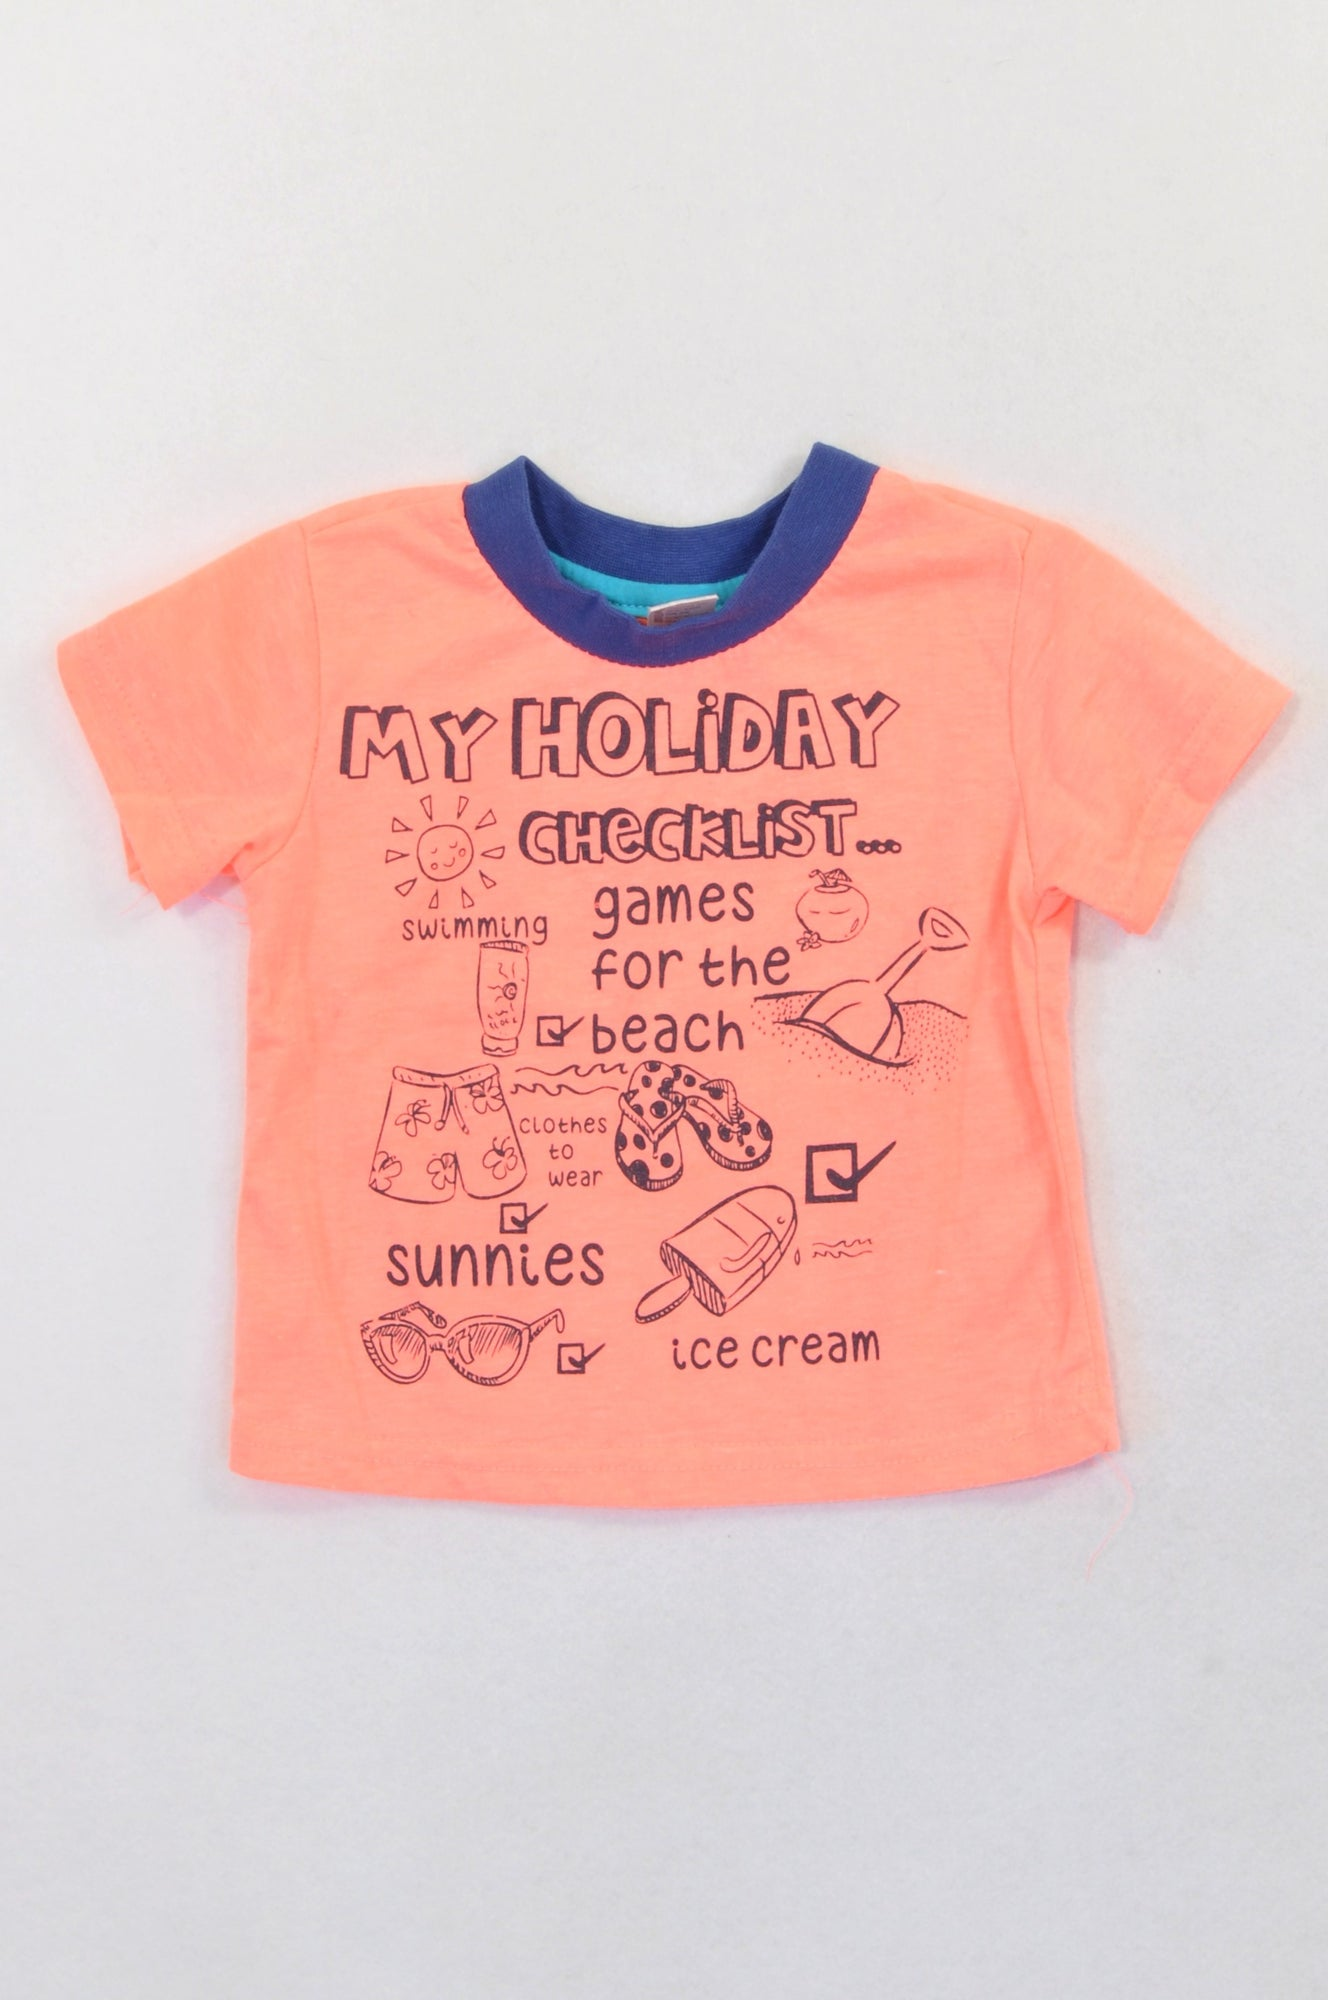 Ackermans Lumo Holiday Checklist T-shirt Unisex 3-6 months